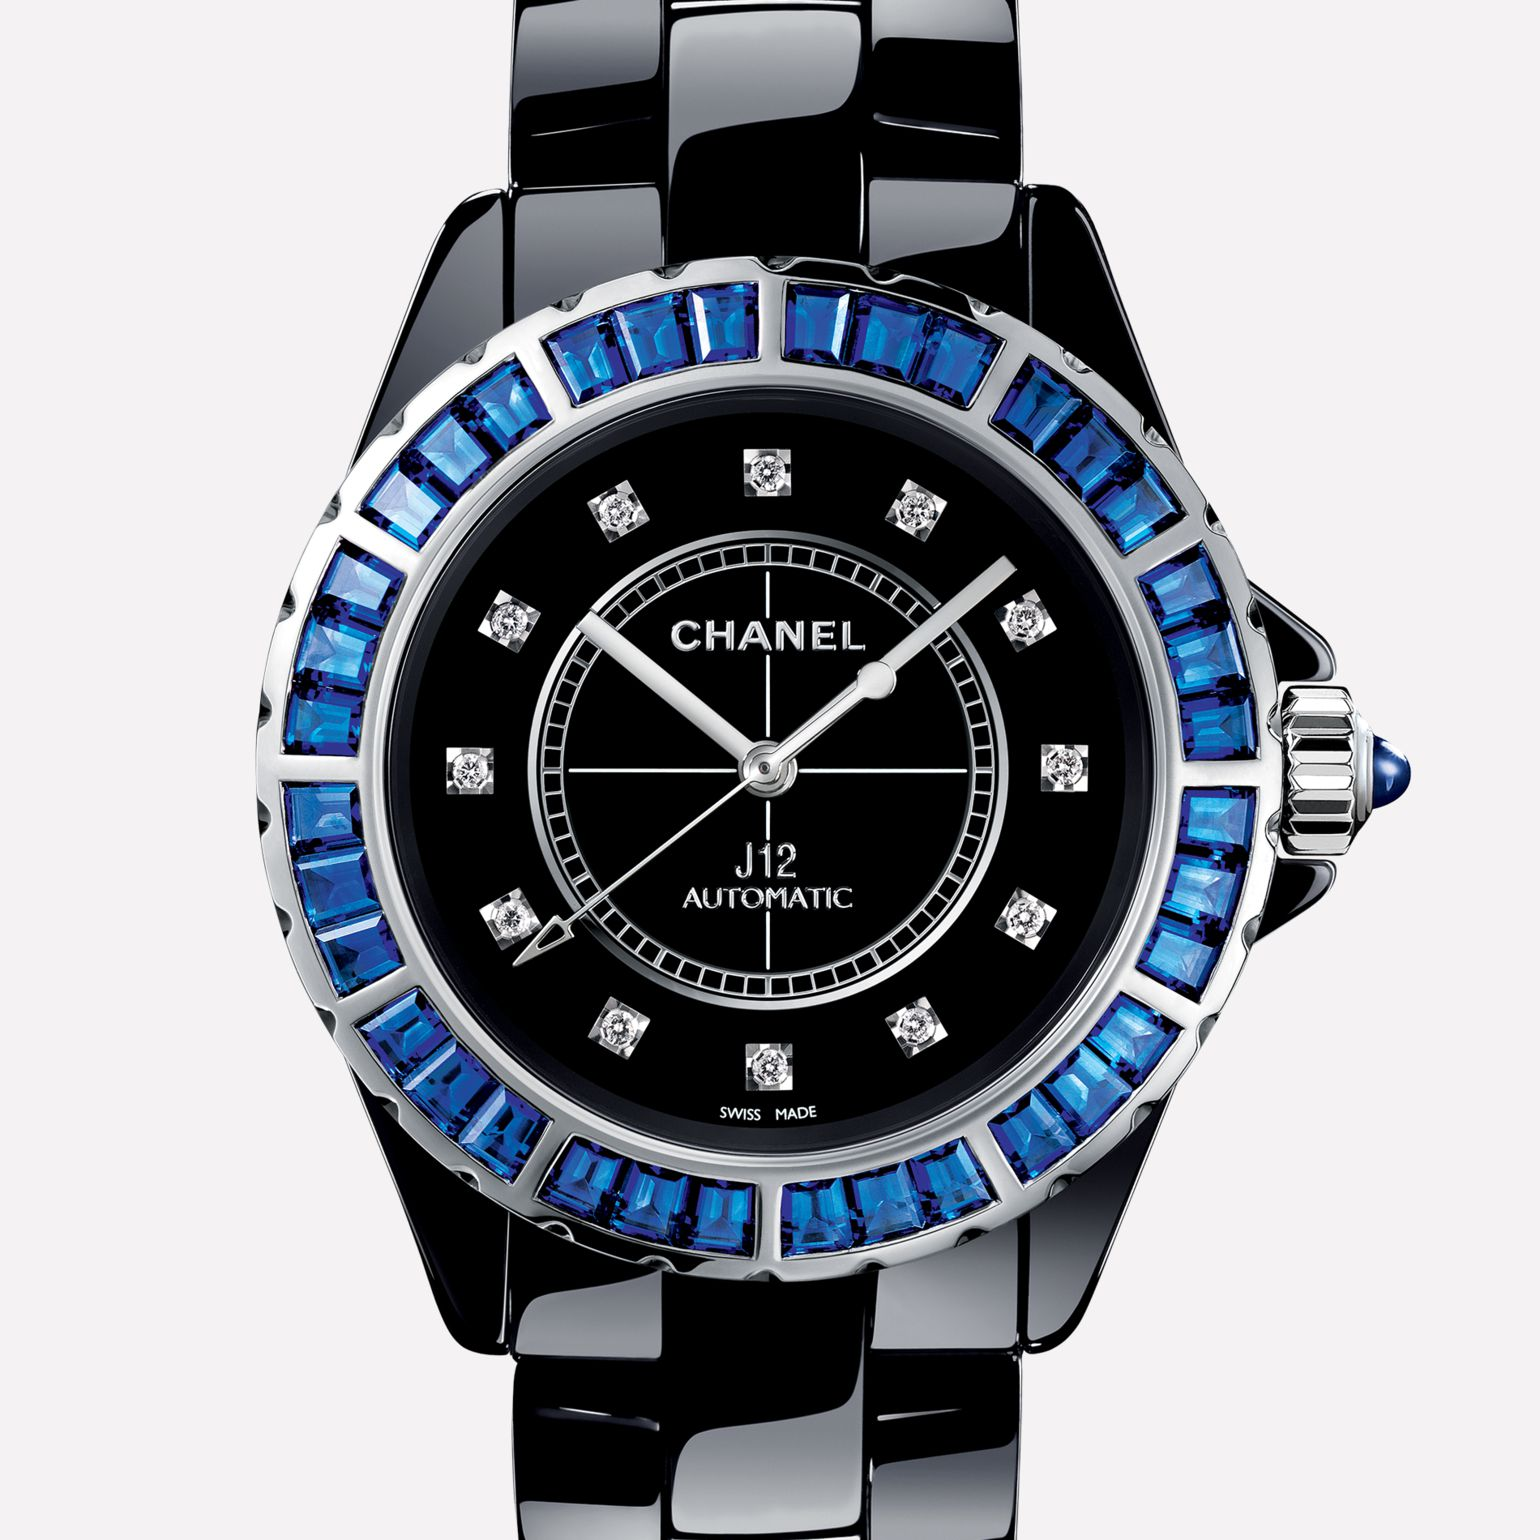 J12 Jewelry Watch Black ceramic and white gold, bezel set with blue baguette-cut sapphires, diamond indicators